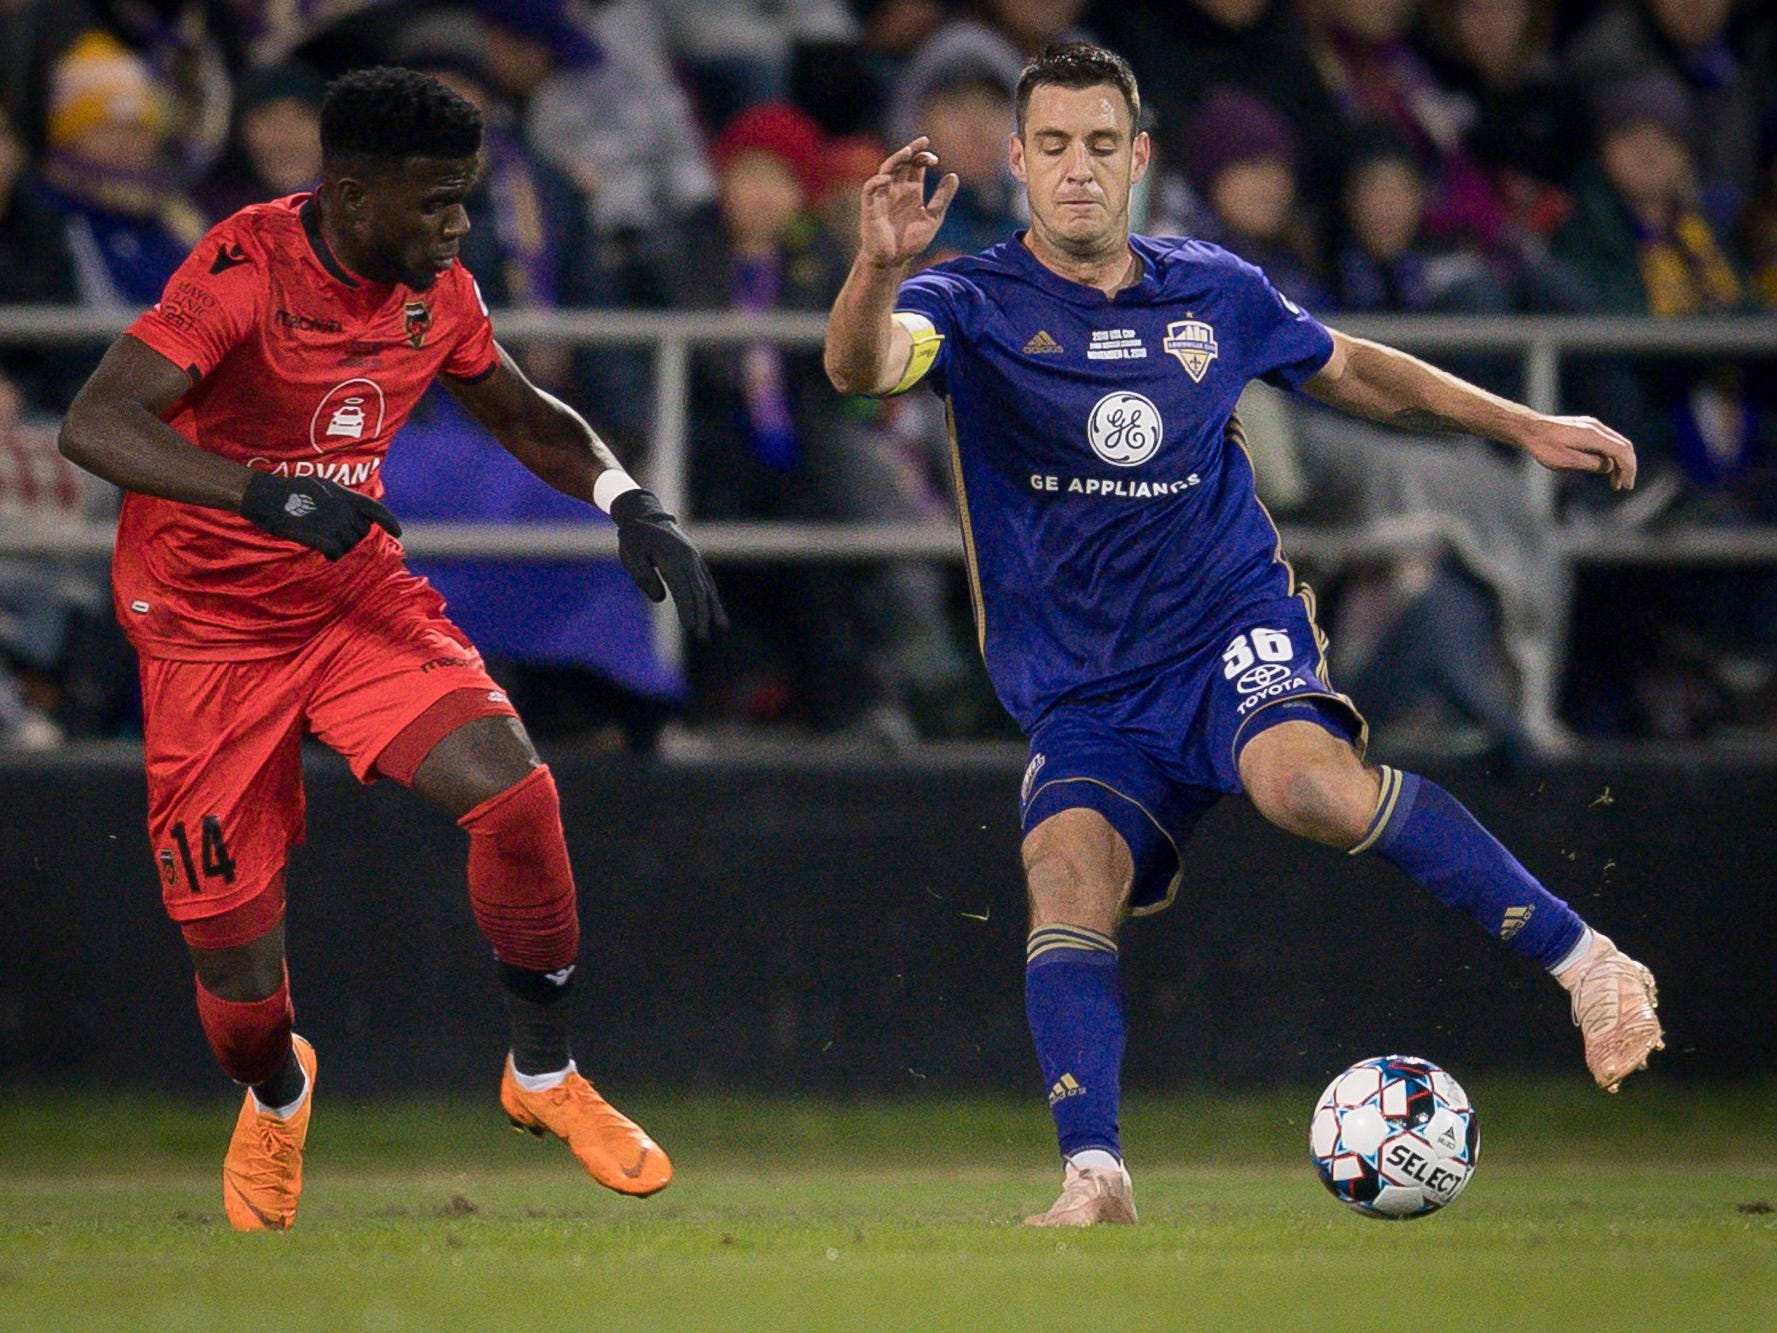 Louisville City FC midfielder Paolo DelPiccolo (36) plays against Phoenix Rising FC forward Jason Johnson (14) during the first half of the USL Cup final played at Lynn Stadium on the campus of the University of Louisville, Louisville, Ky., Thursday, Nov., 8, 2018.